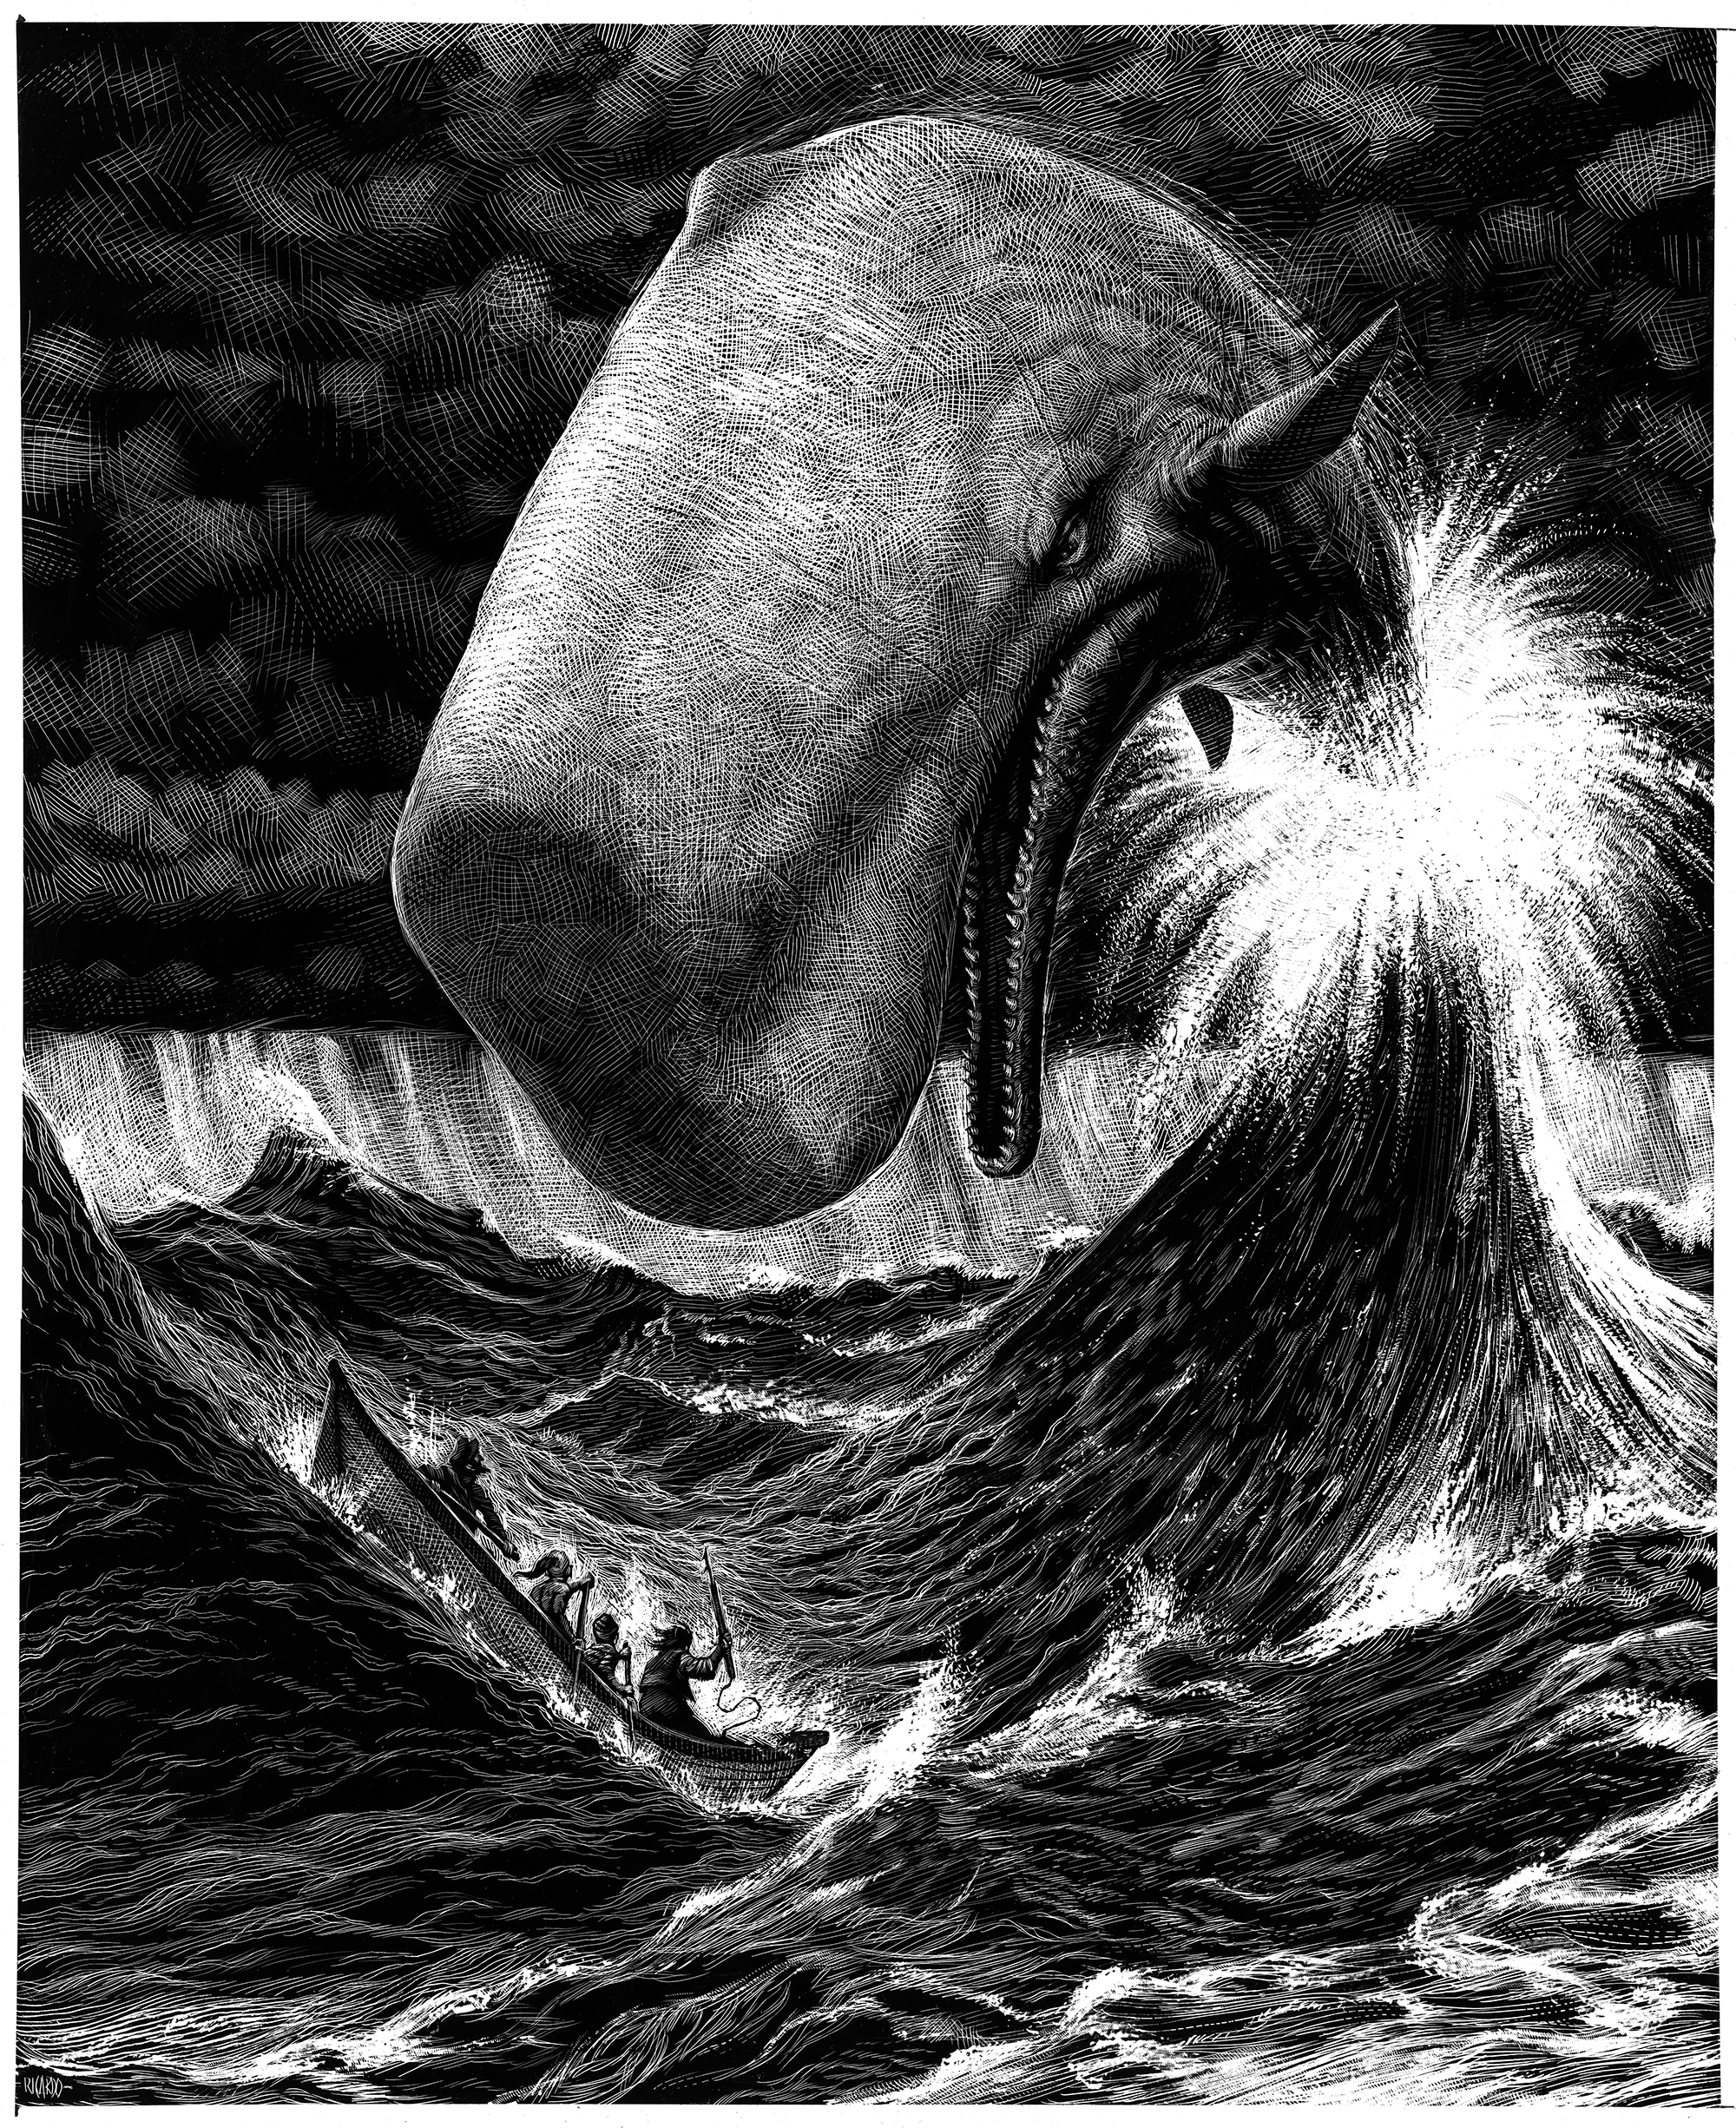 photoshoptutorials-moby-dick-copia